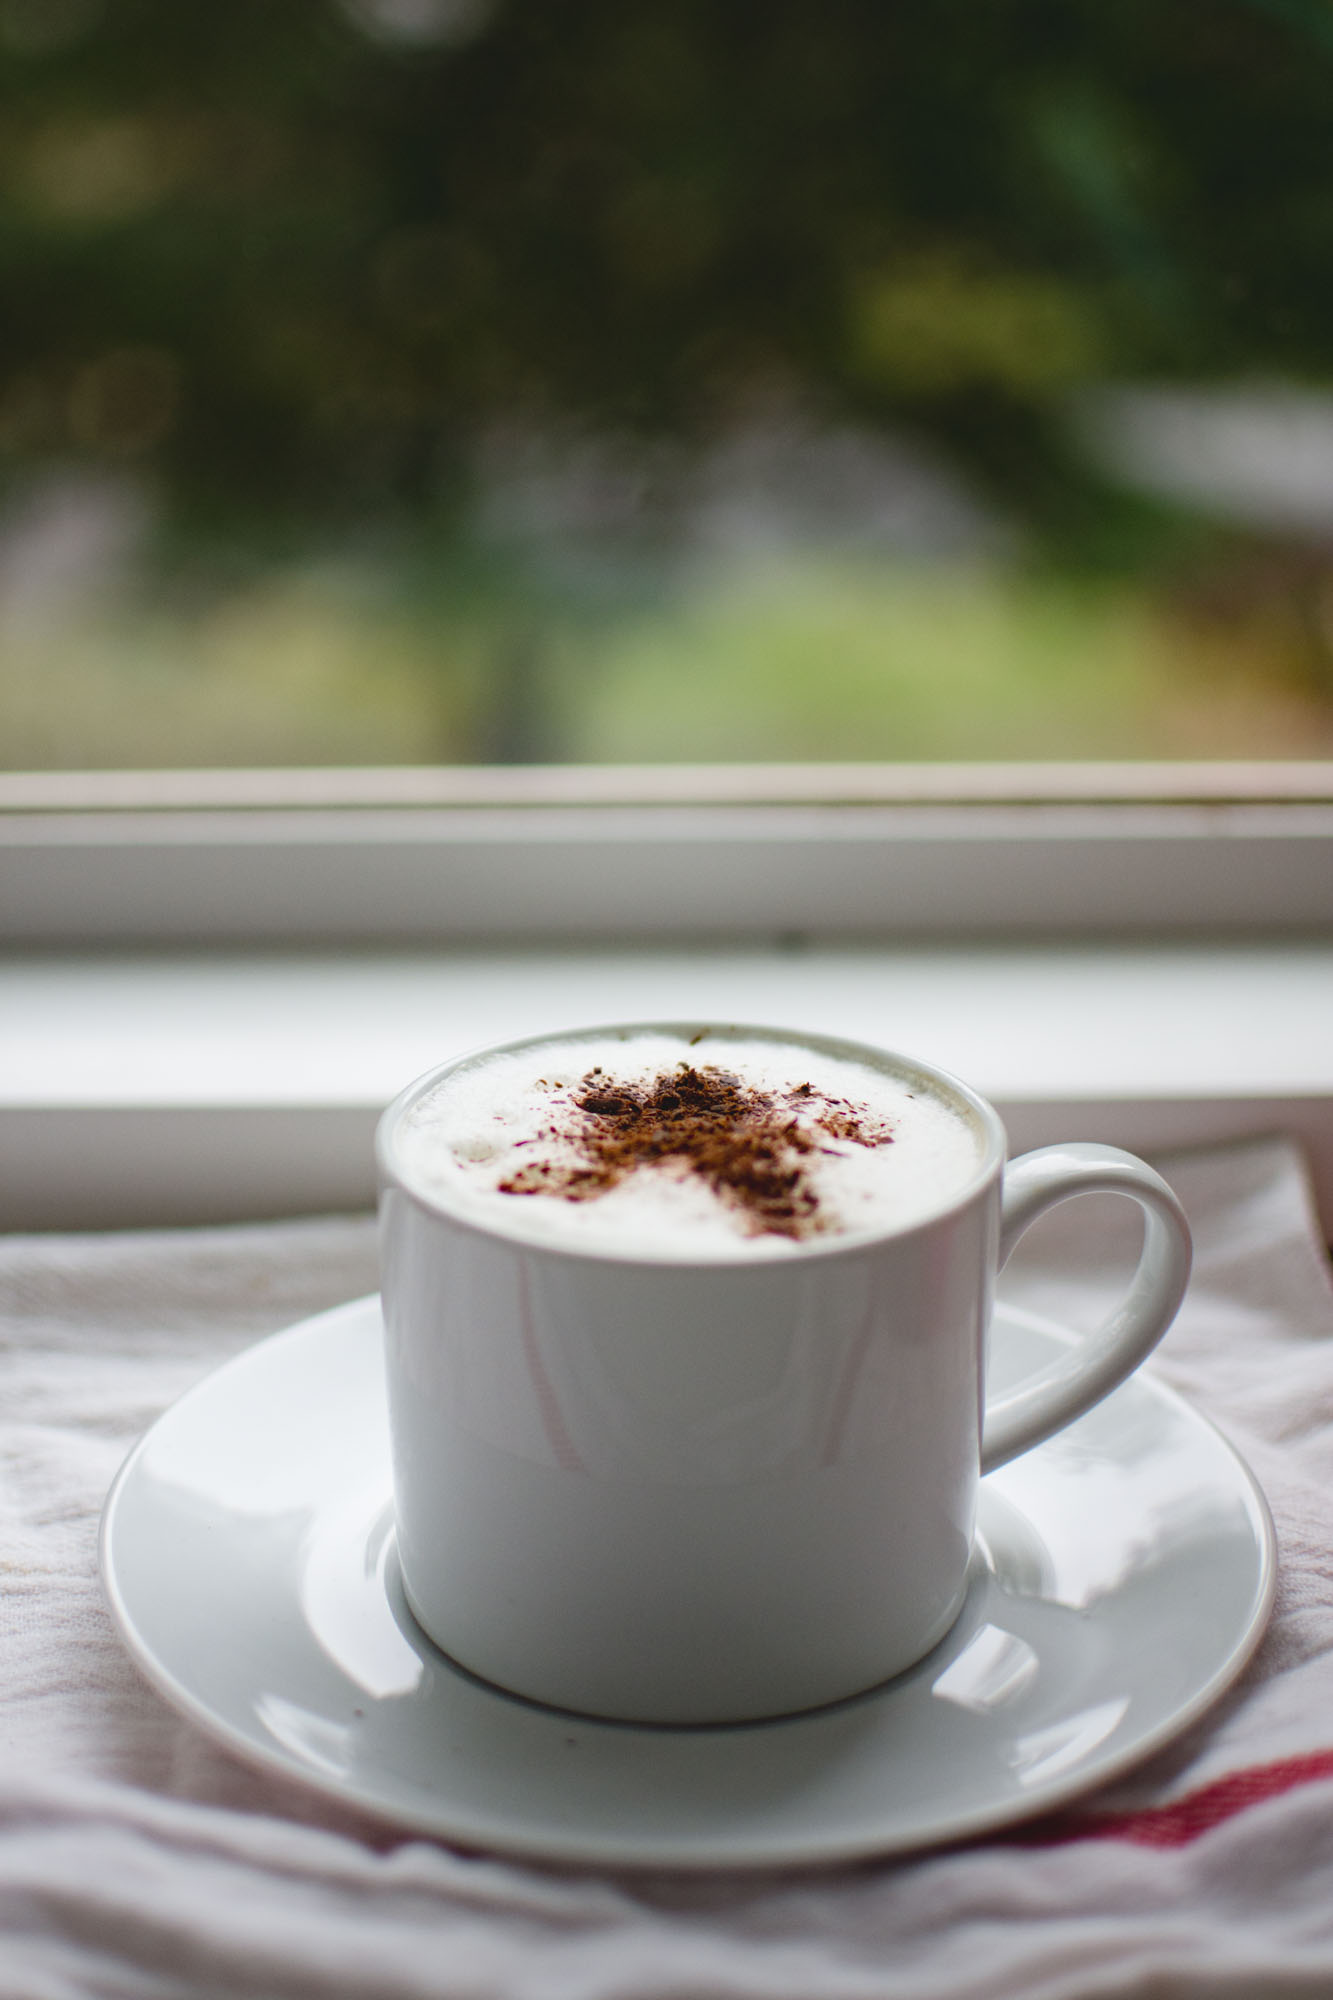 how to make cappuccino at home without espresso machine